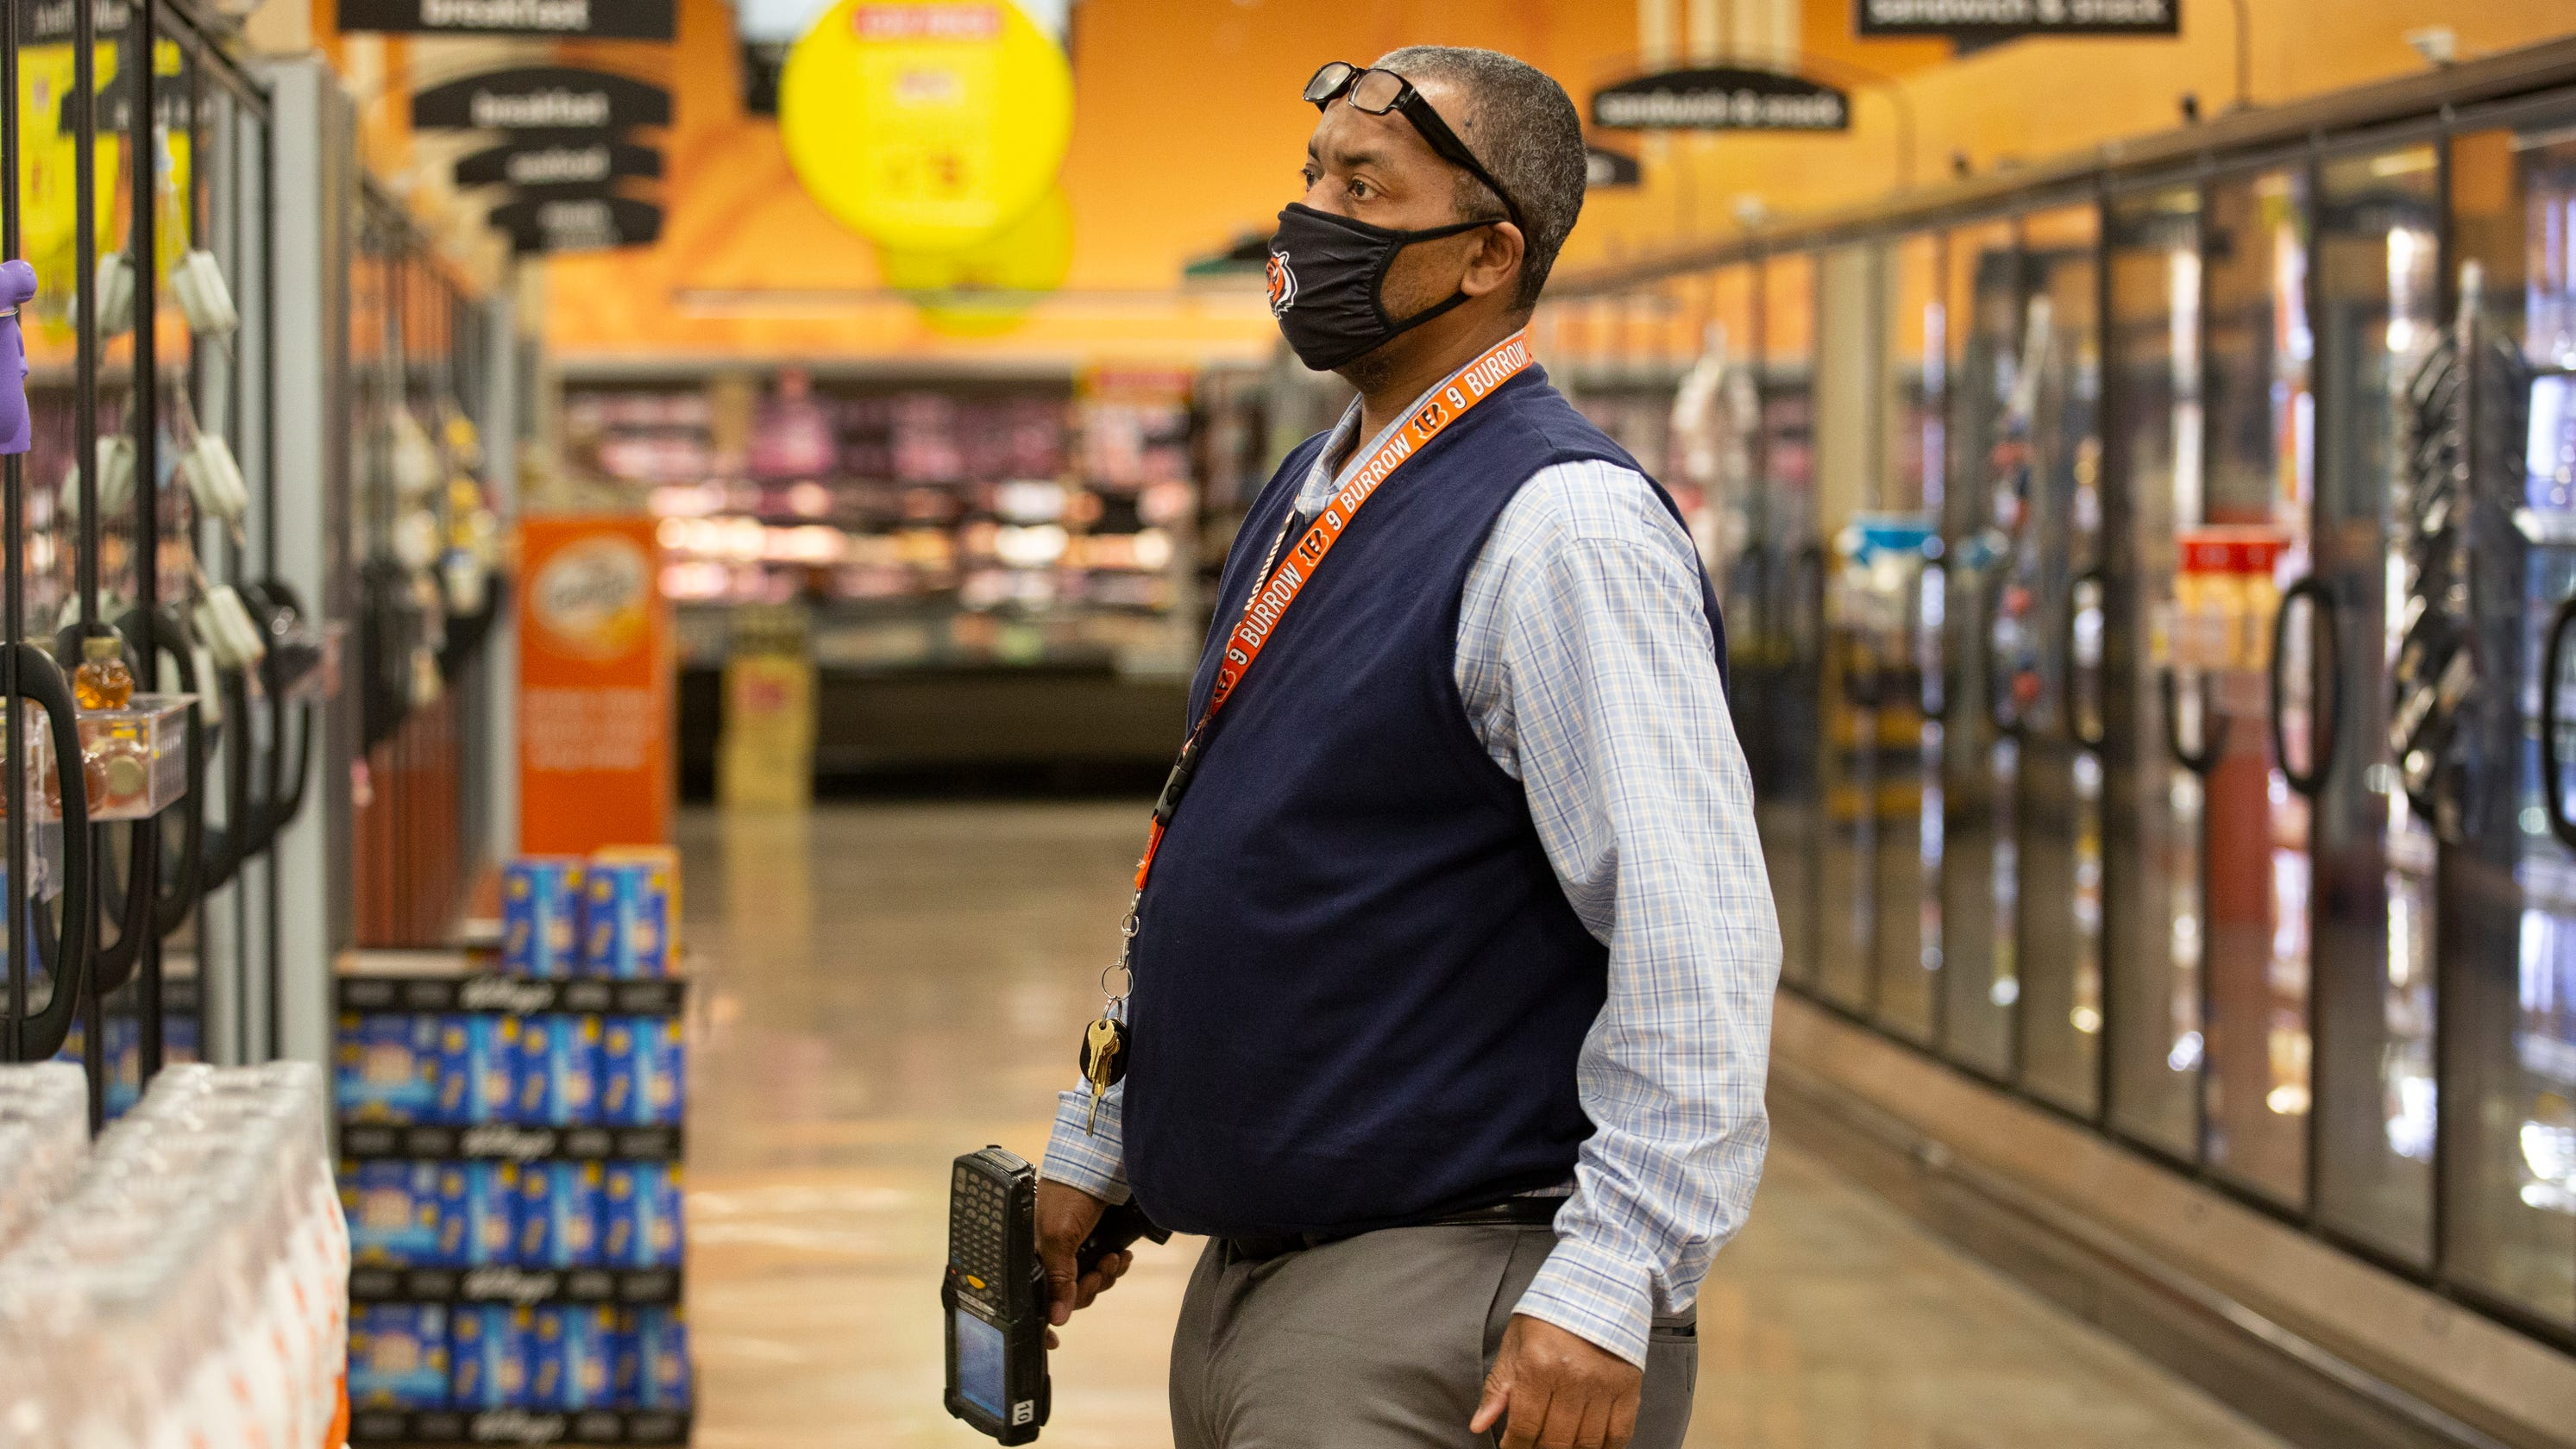 More closings over hazard pay: Kroger shutters three stores in Los Angeles - The Cincinnati Enquirer